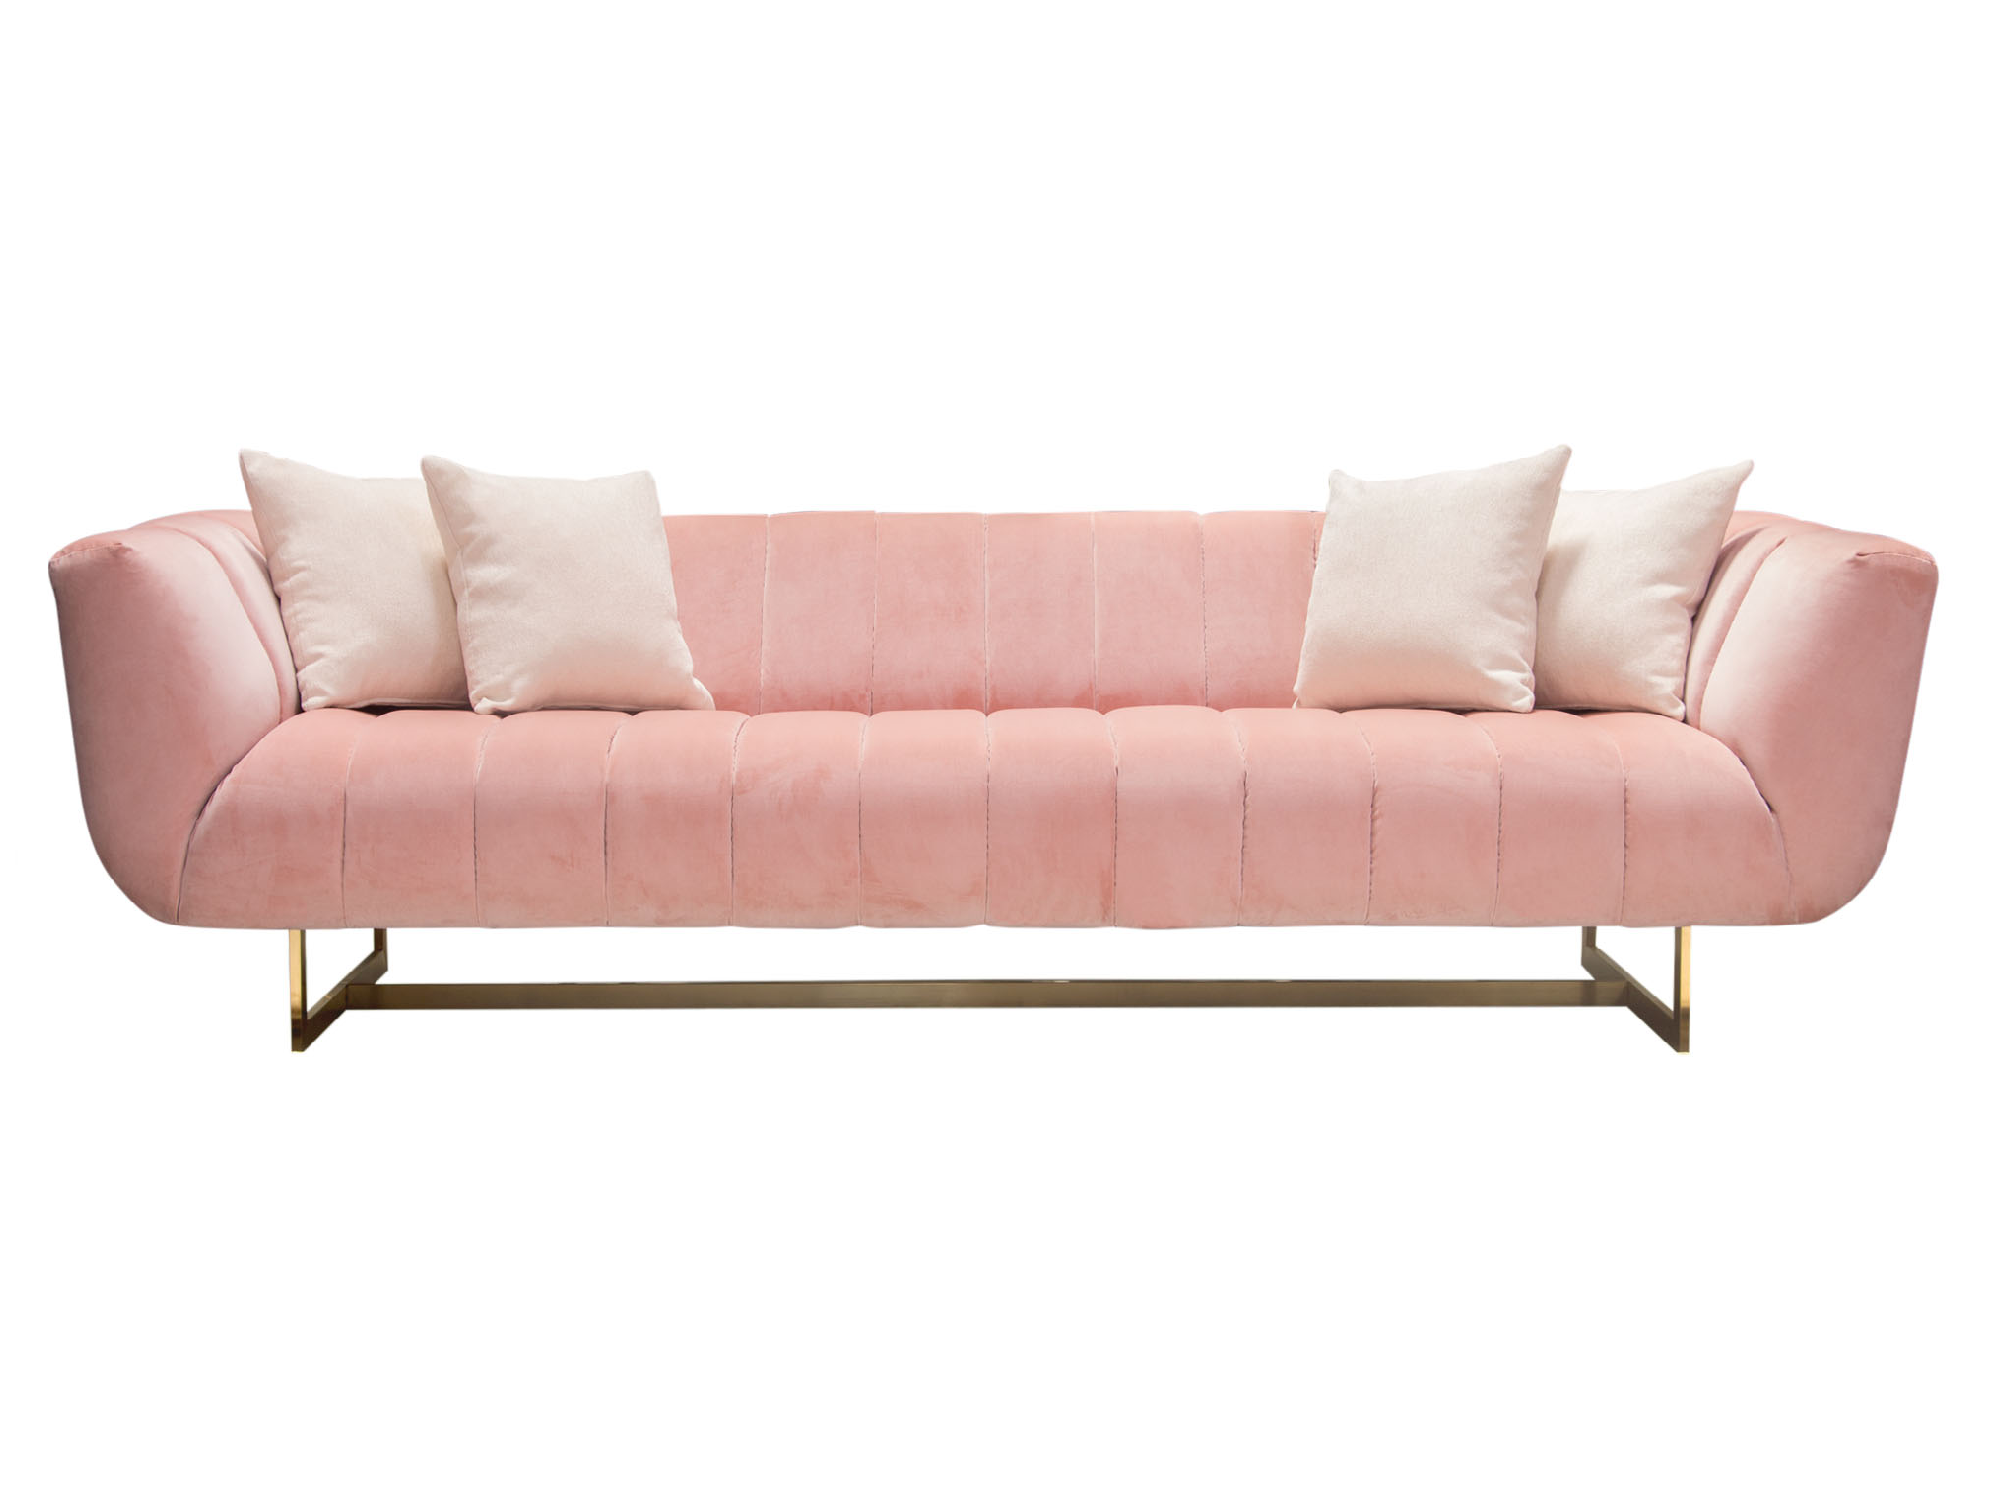 AVENUE SOFA - BLUSH